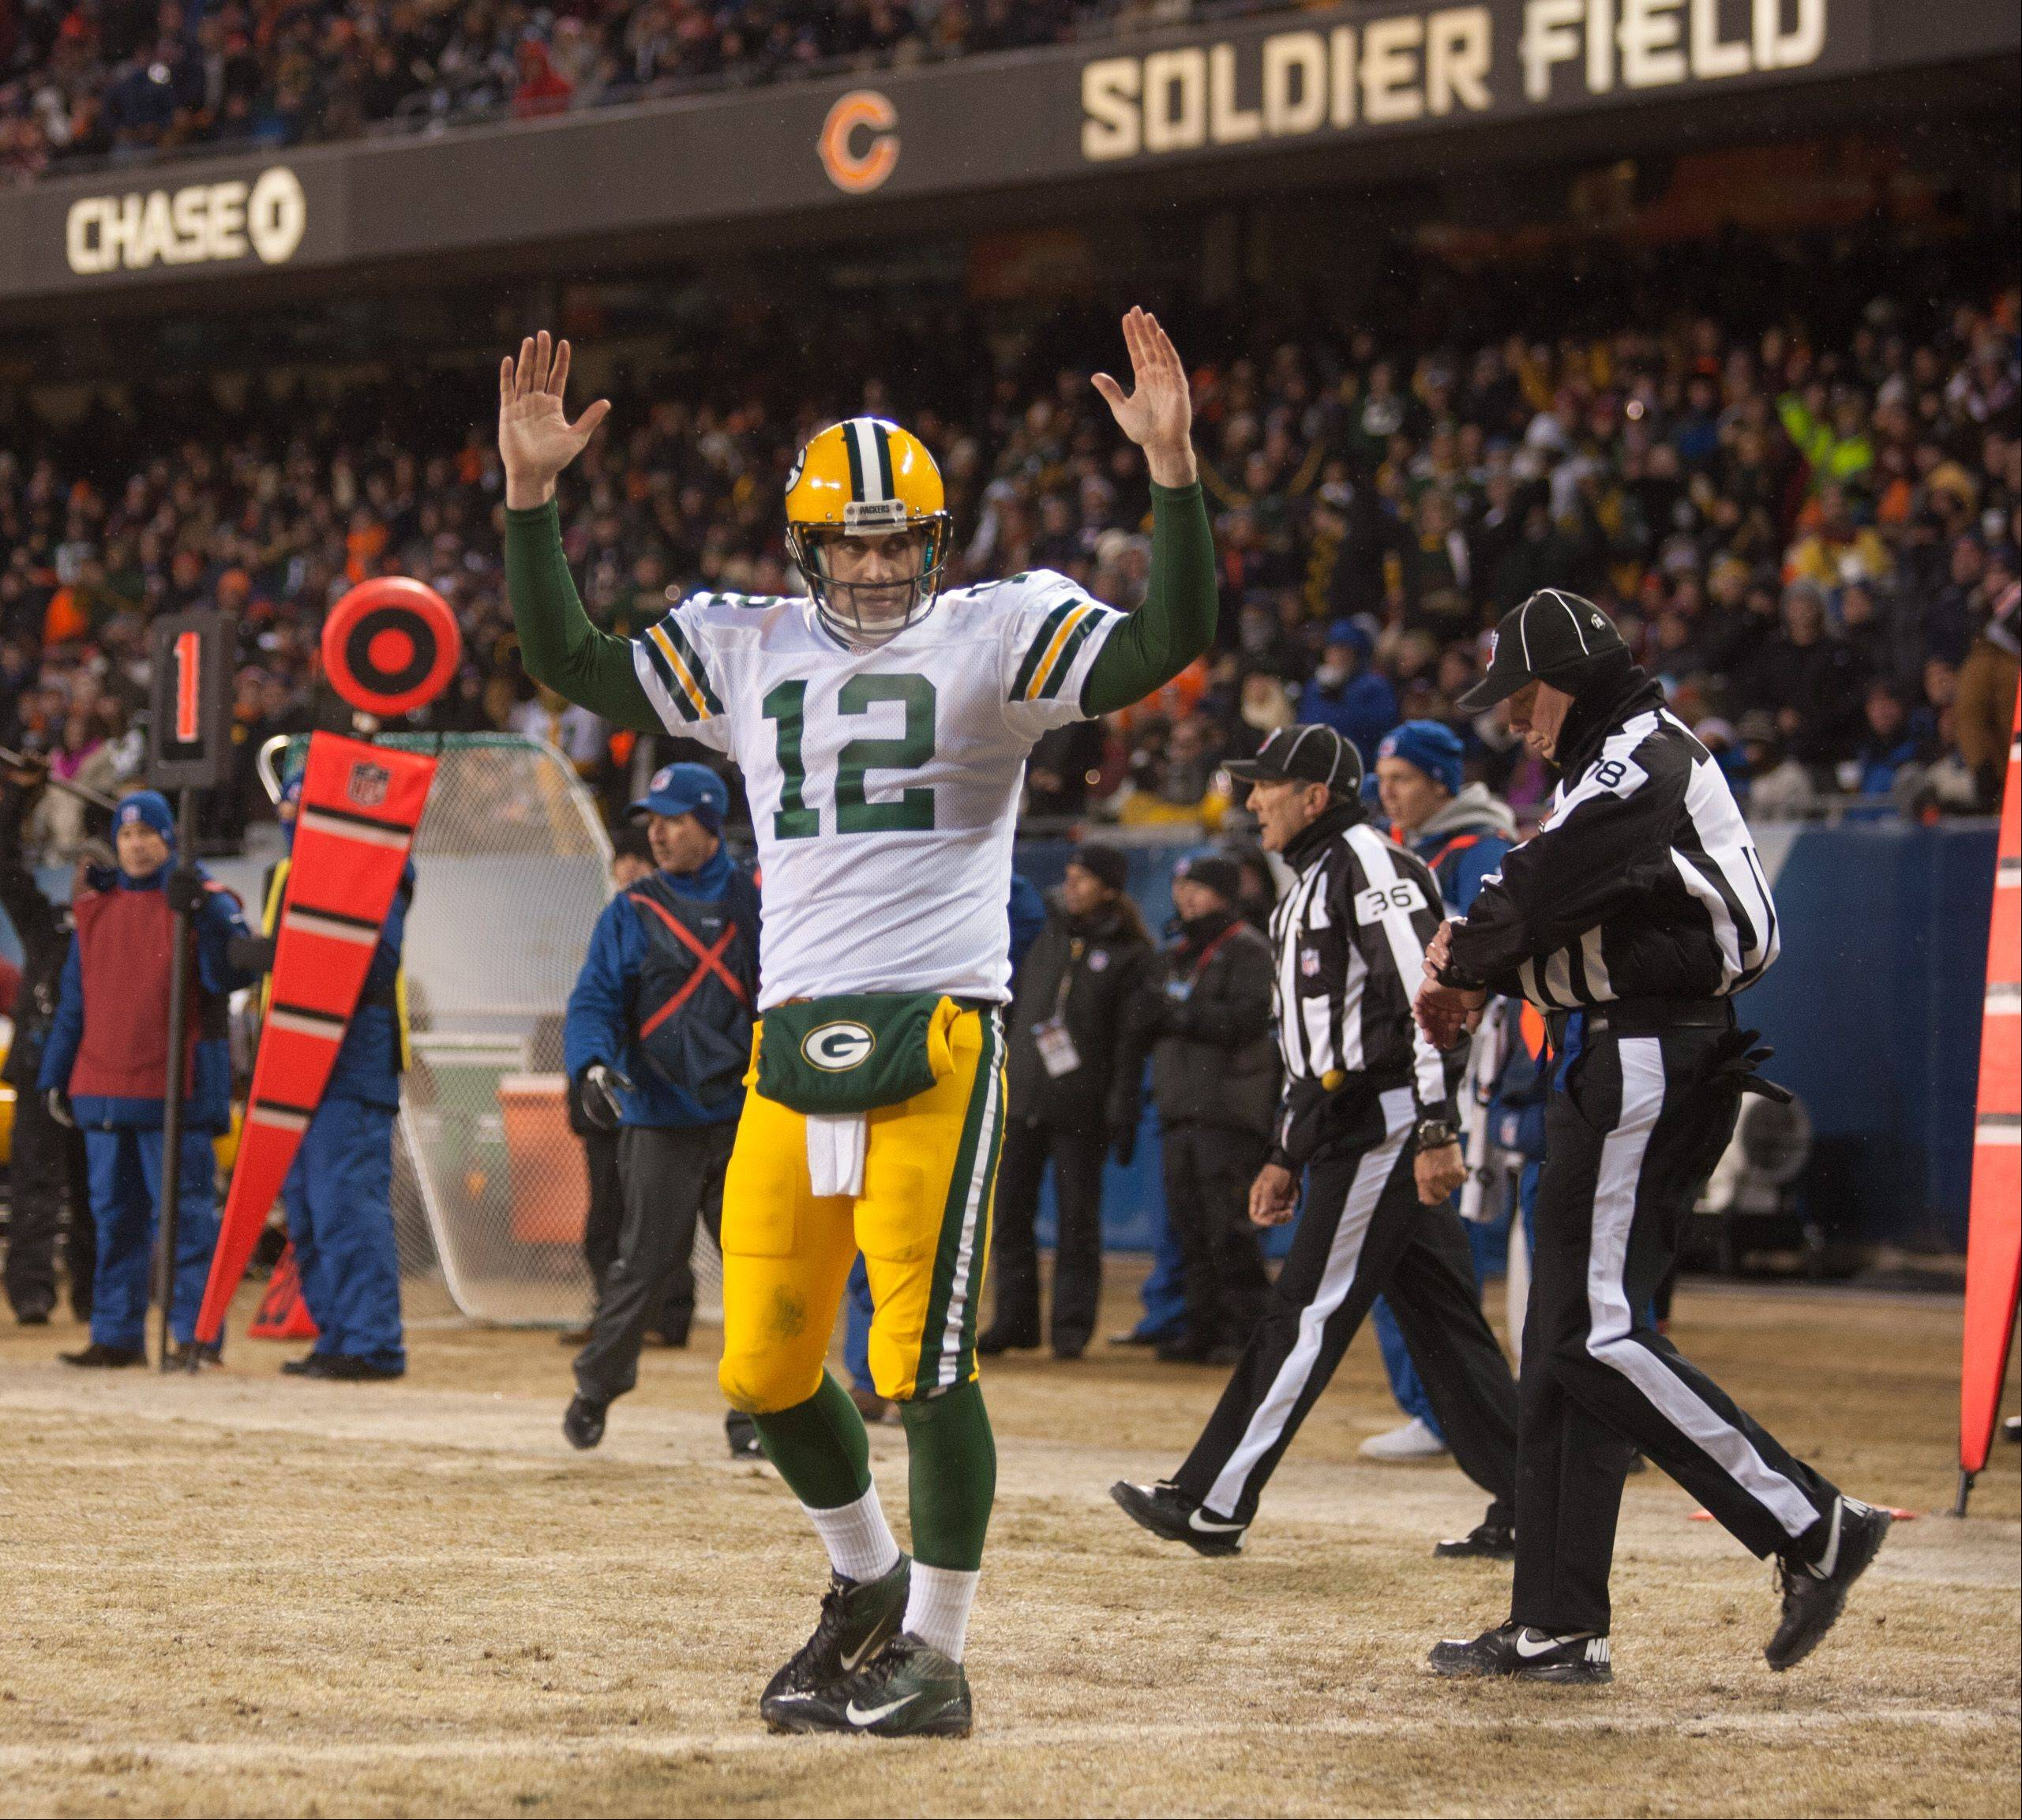 Aaron Rodgers signals a touchdown on his first half fumble that was run in for a touchdown.